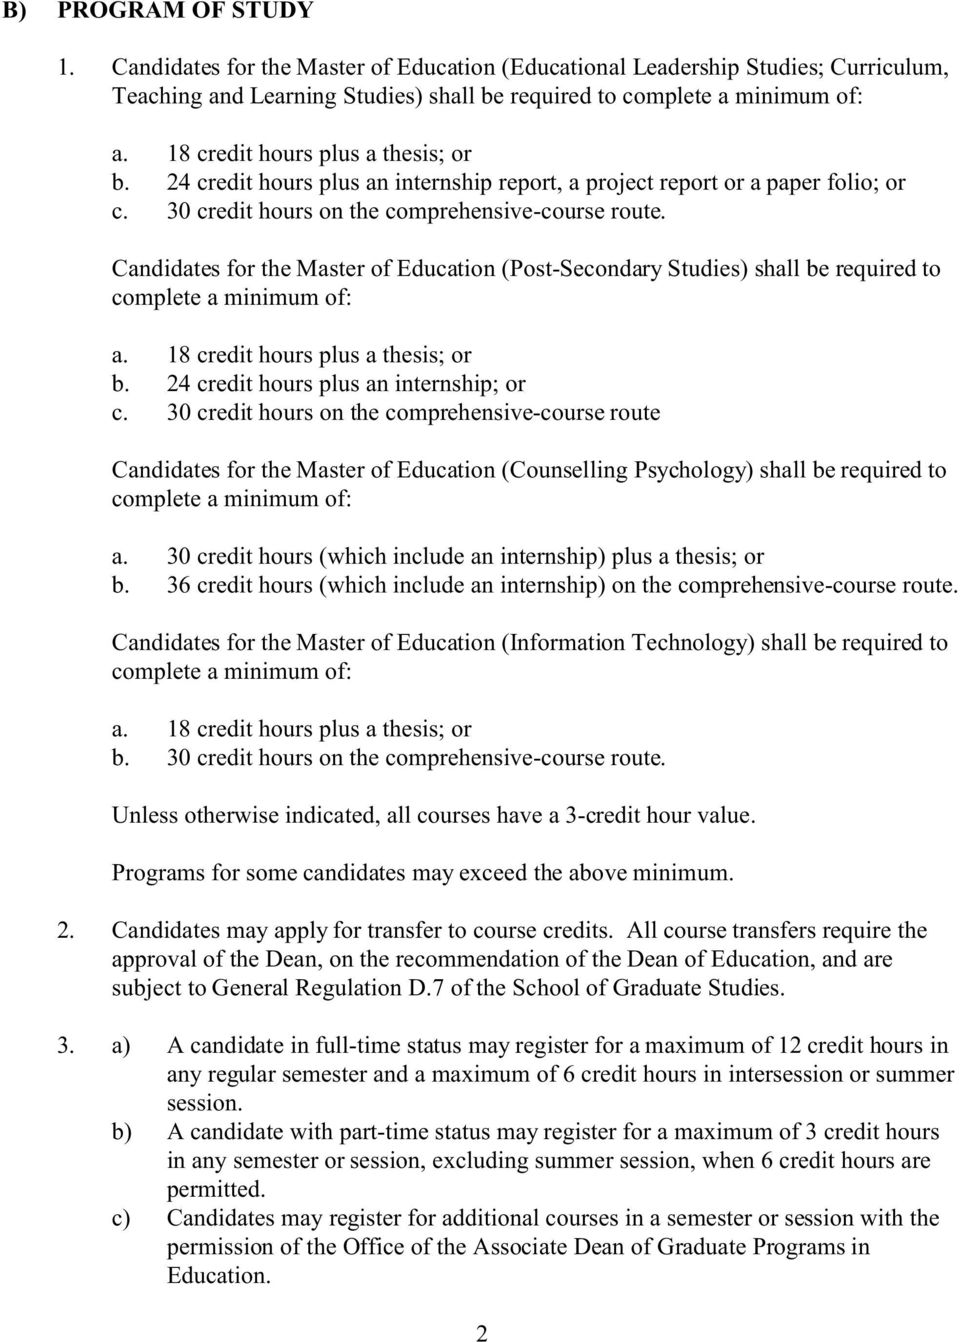 Candidates for the Master of Education (Post-Secondary Studies) shall be required to complete a minimum of: a. 18 credit hours plus a thesis; or b. 24 credit hours plus an internship; or c.